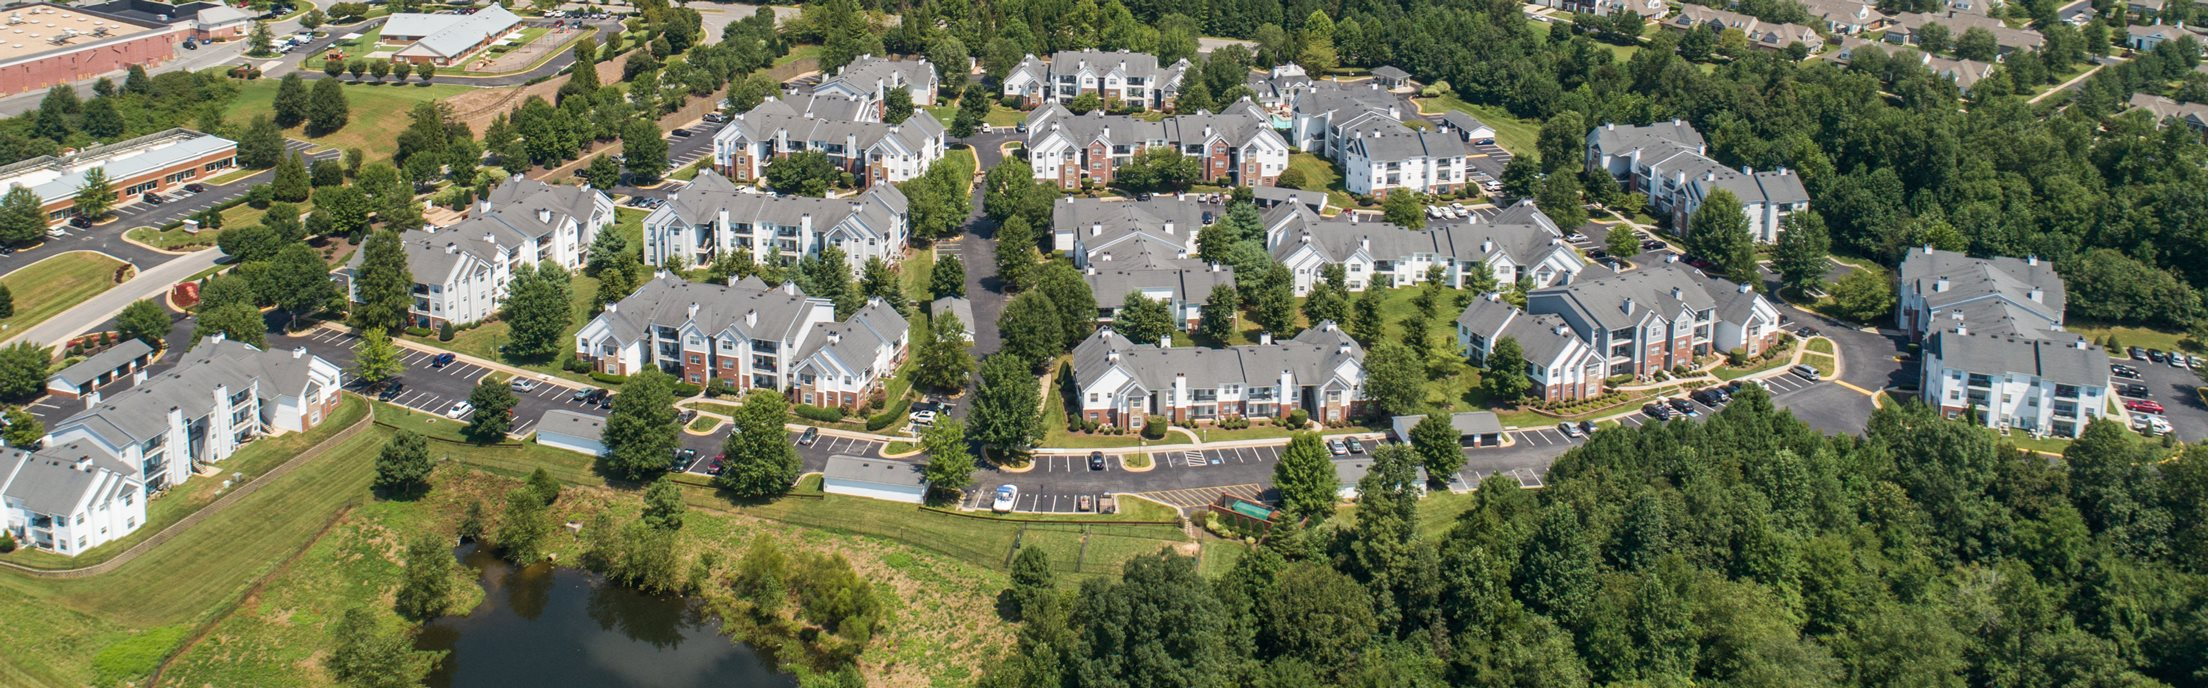 Swift Creek Commons Apartments - Aerial photo of property